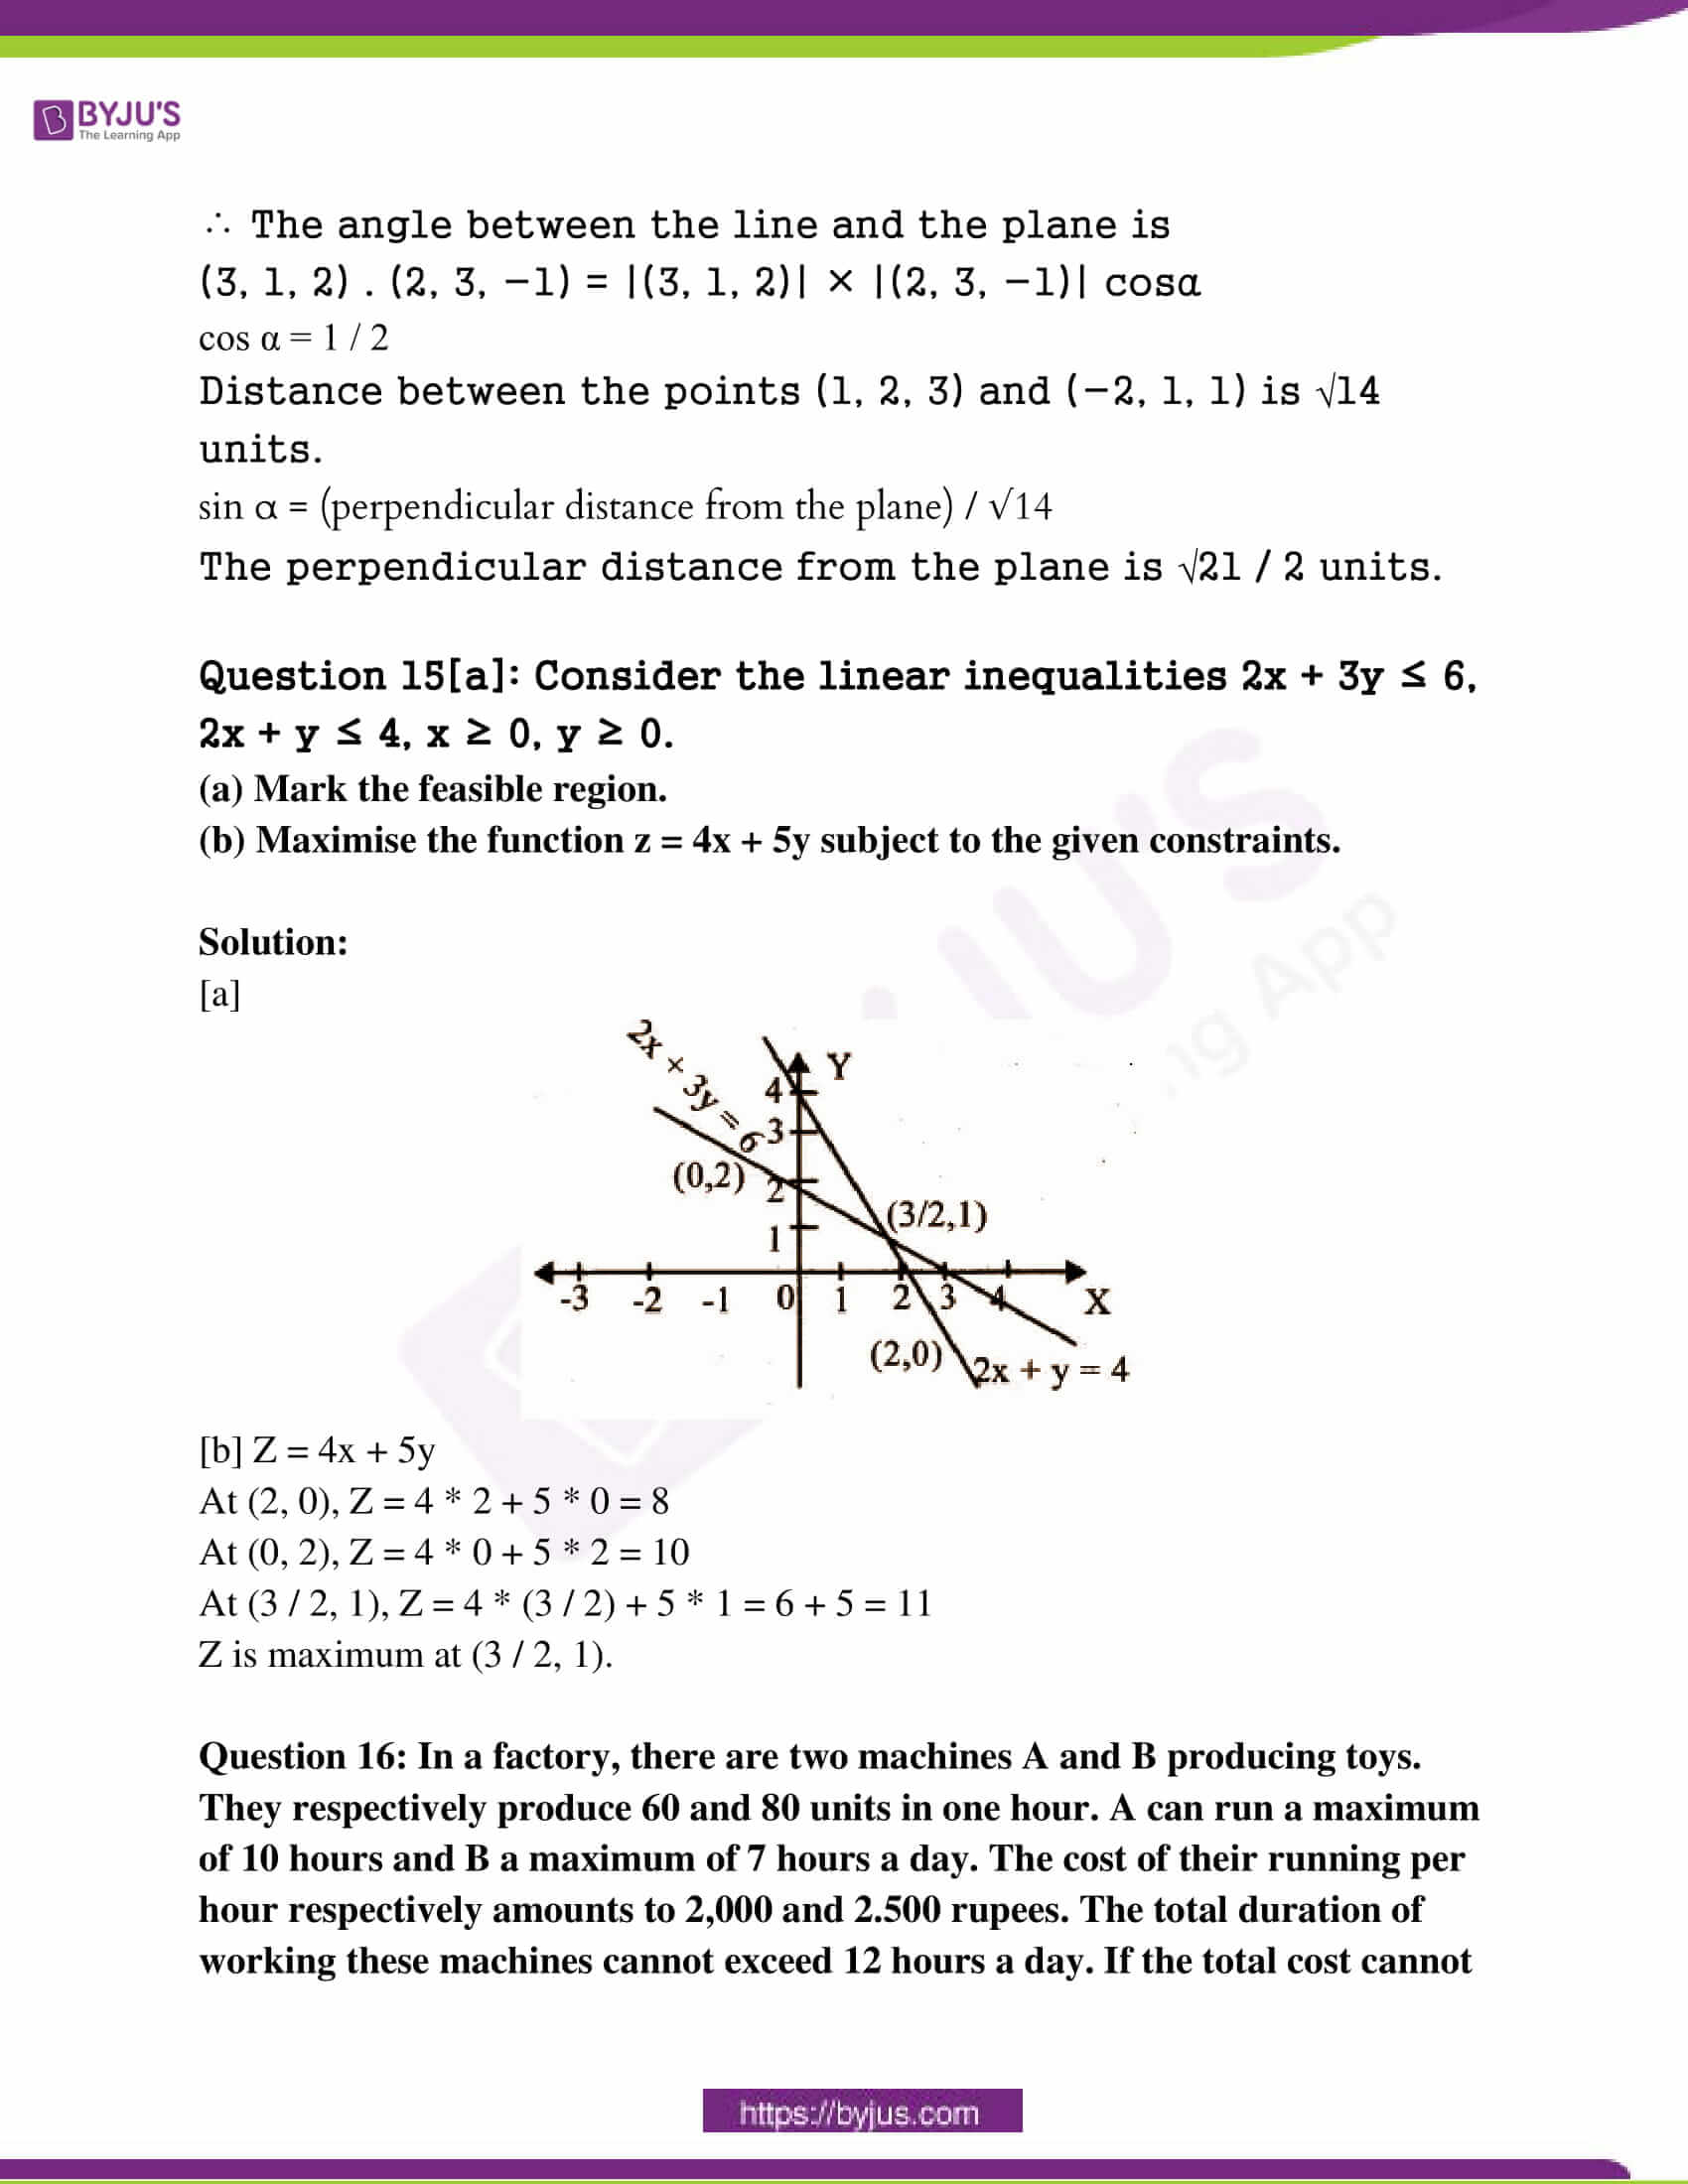 kerala class 12 examination question paper solutions march 2015 16